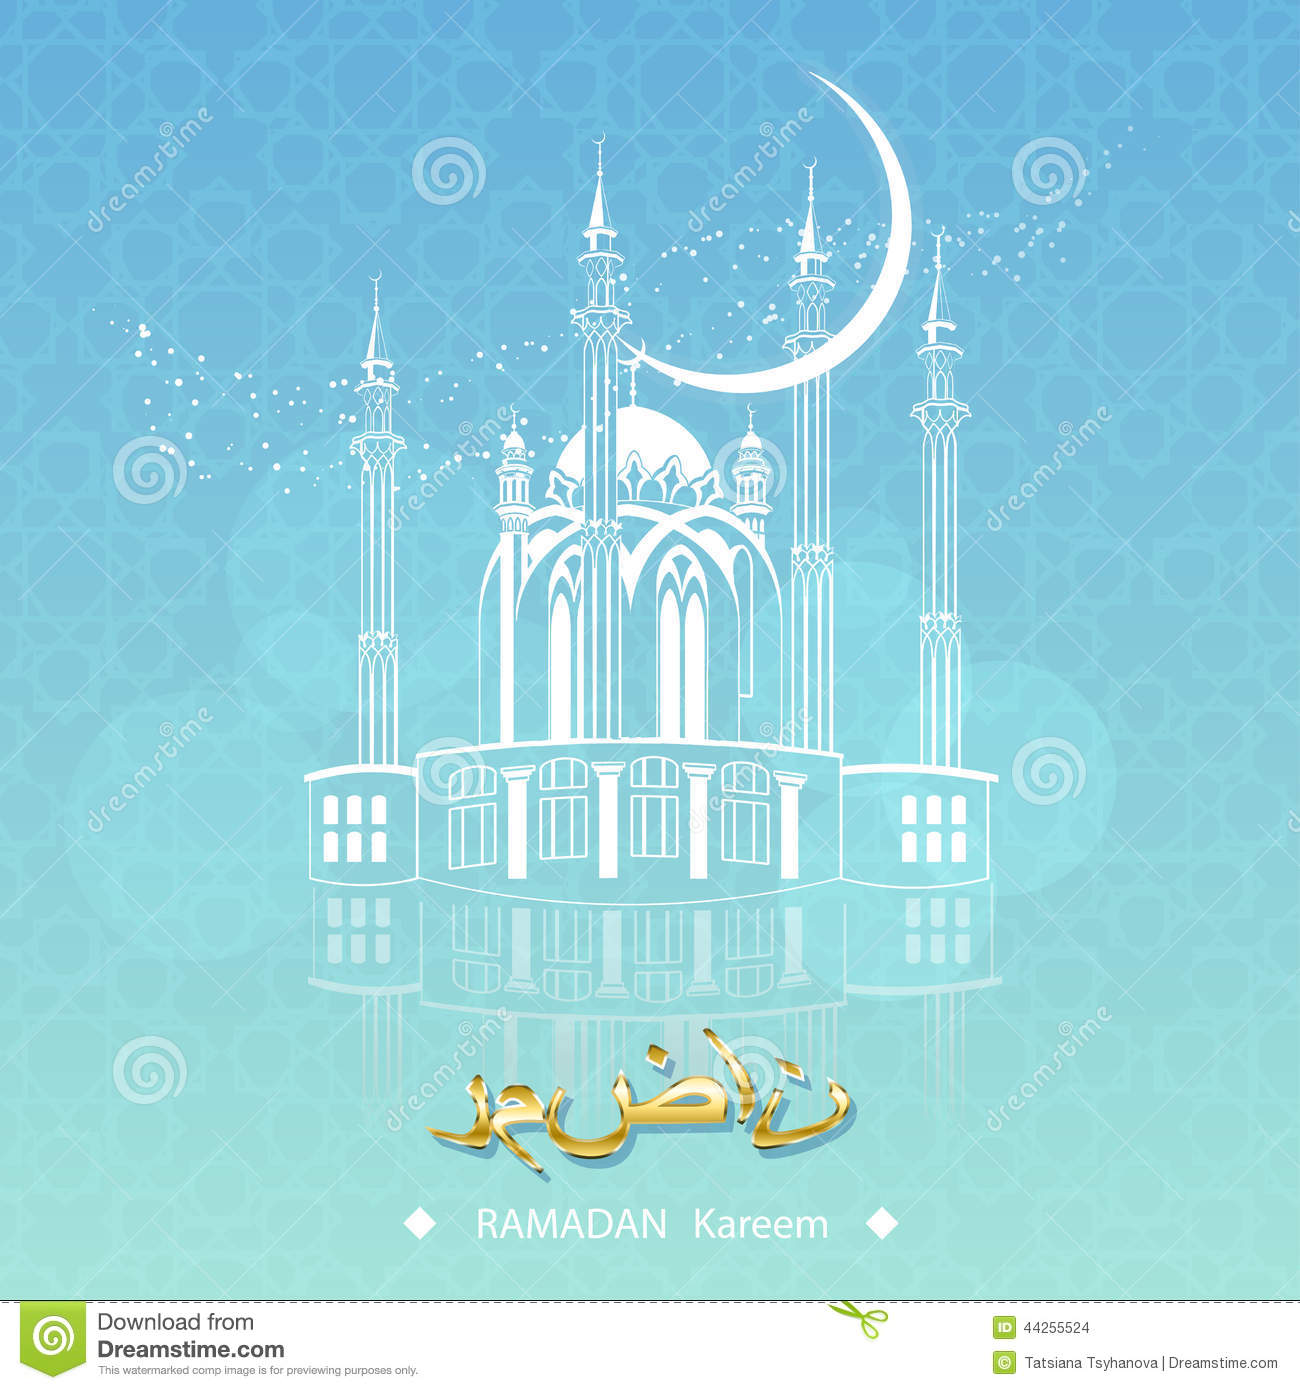 Eid Ul Fitr Eid Mubarak Stock Vector Illustration Of Card 44255524